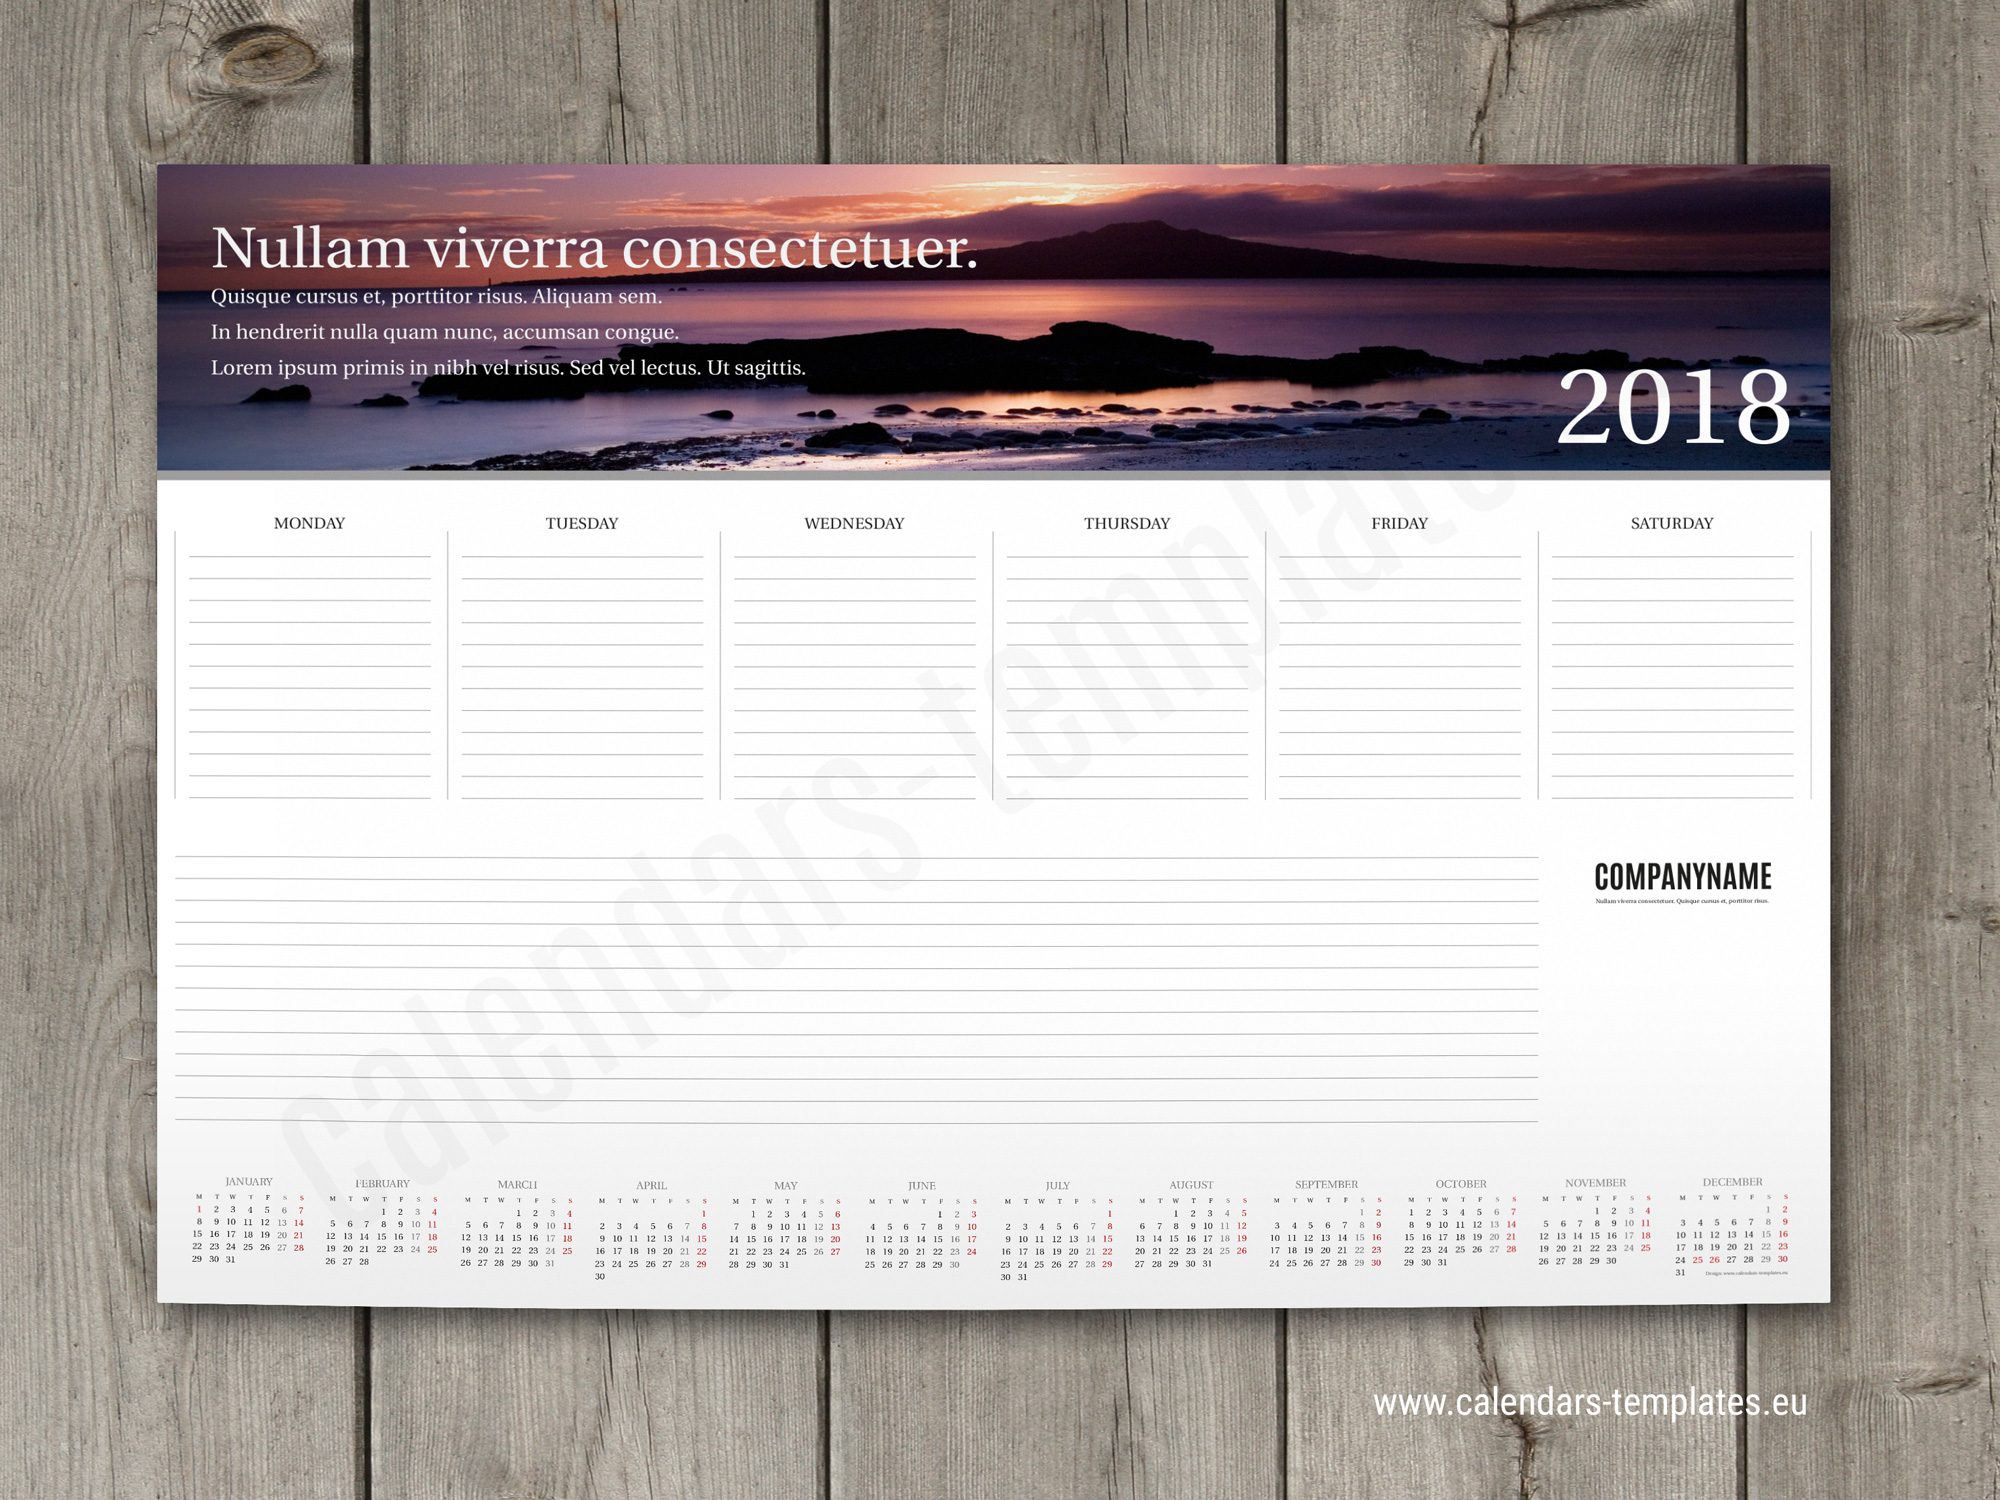 Weekly planner pad template 2018 with small yearly calendar and photo weekly planner pad 2018 maxwellsz